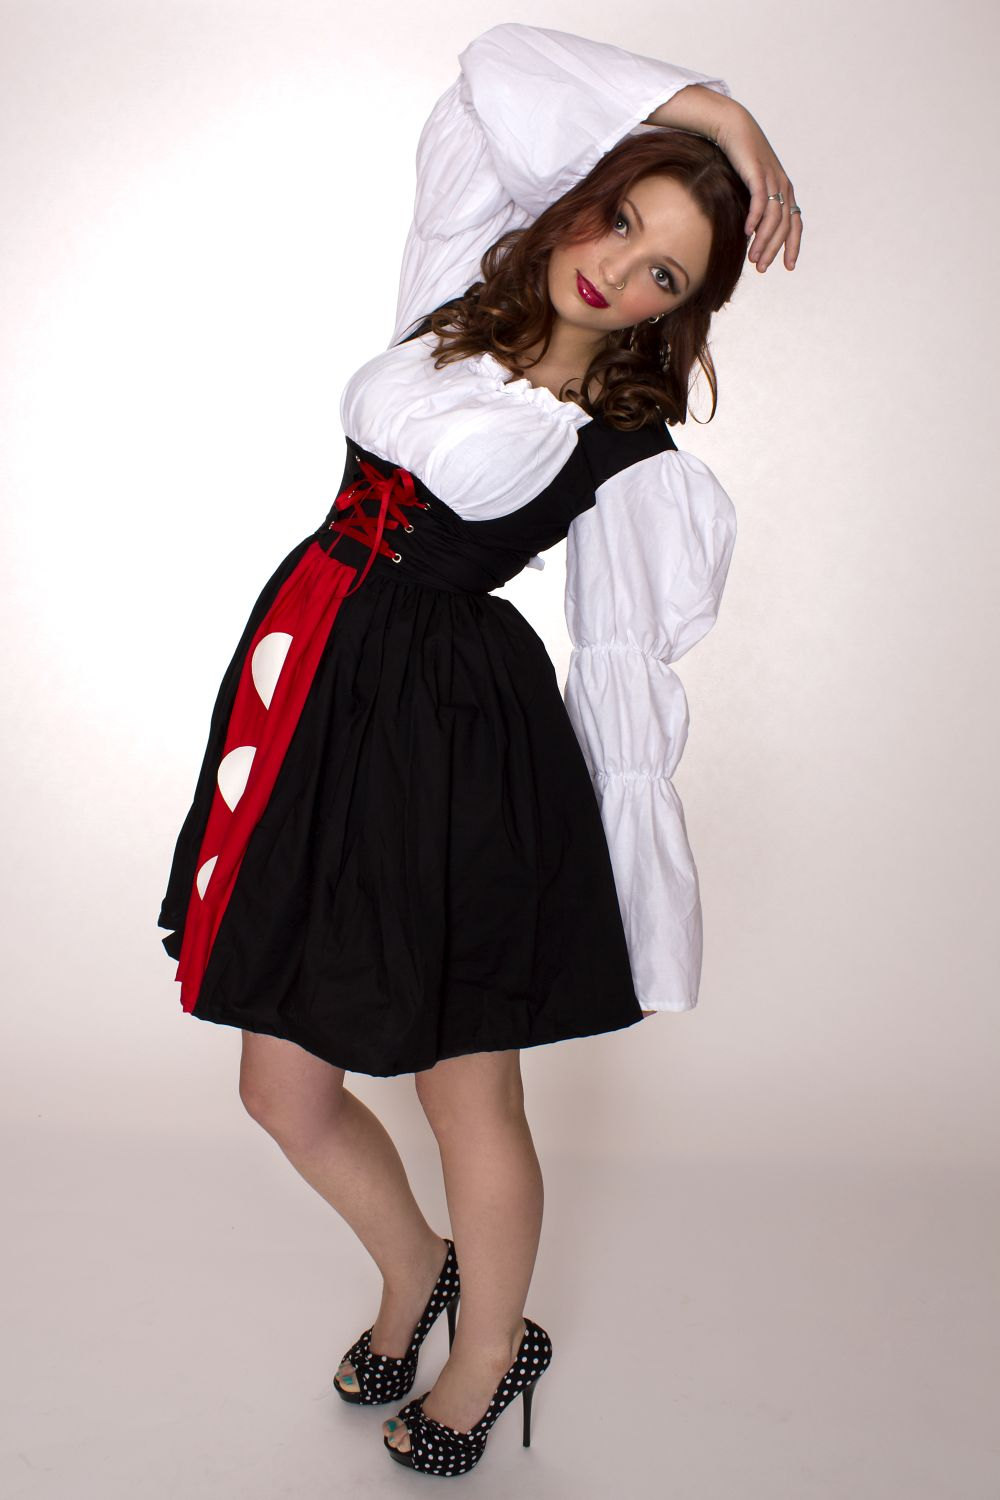 Queen of Hearts Dress Alice in Wonderland Halloween Costume Custom Size Plus Size Made to Measure